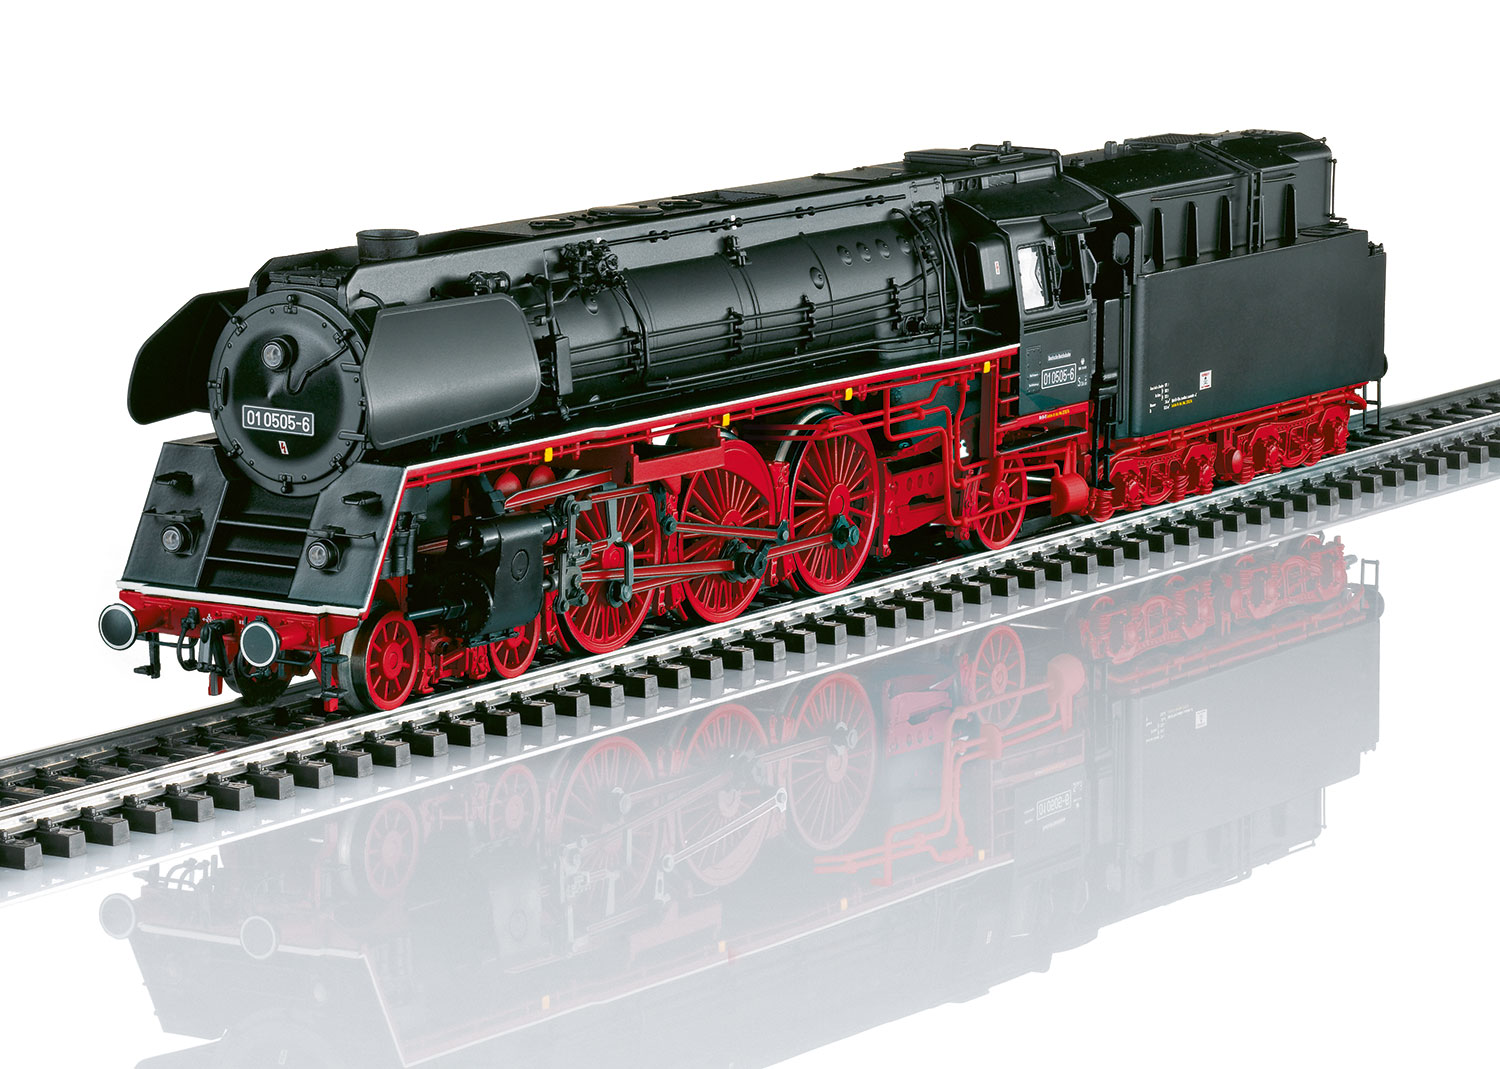 Steam Express Locomotive with a Tender.